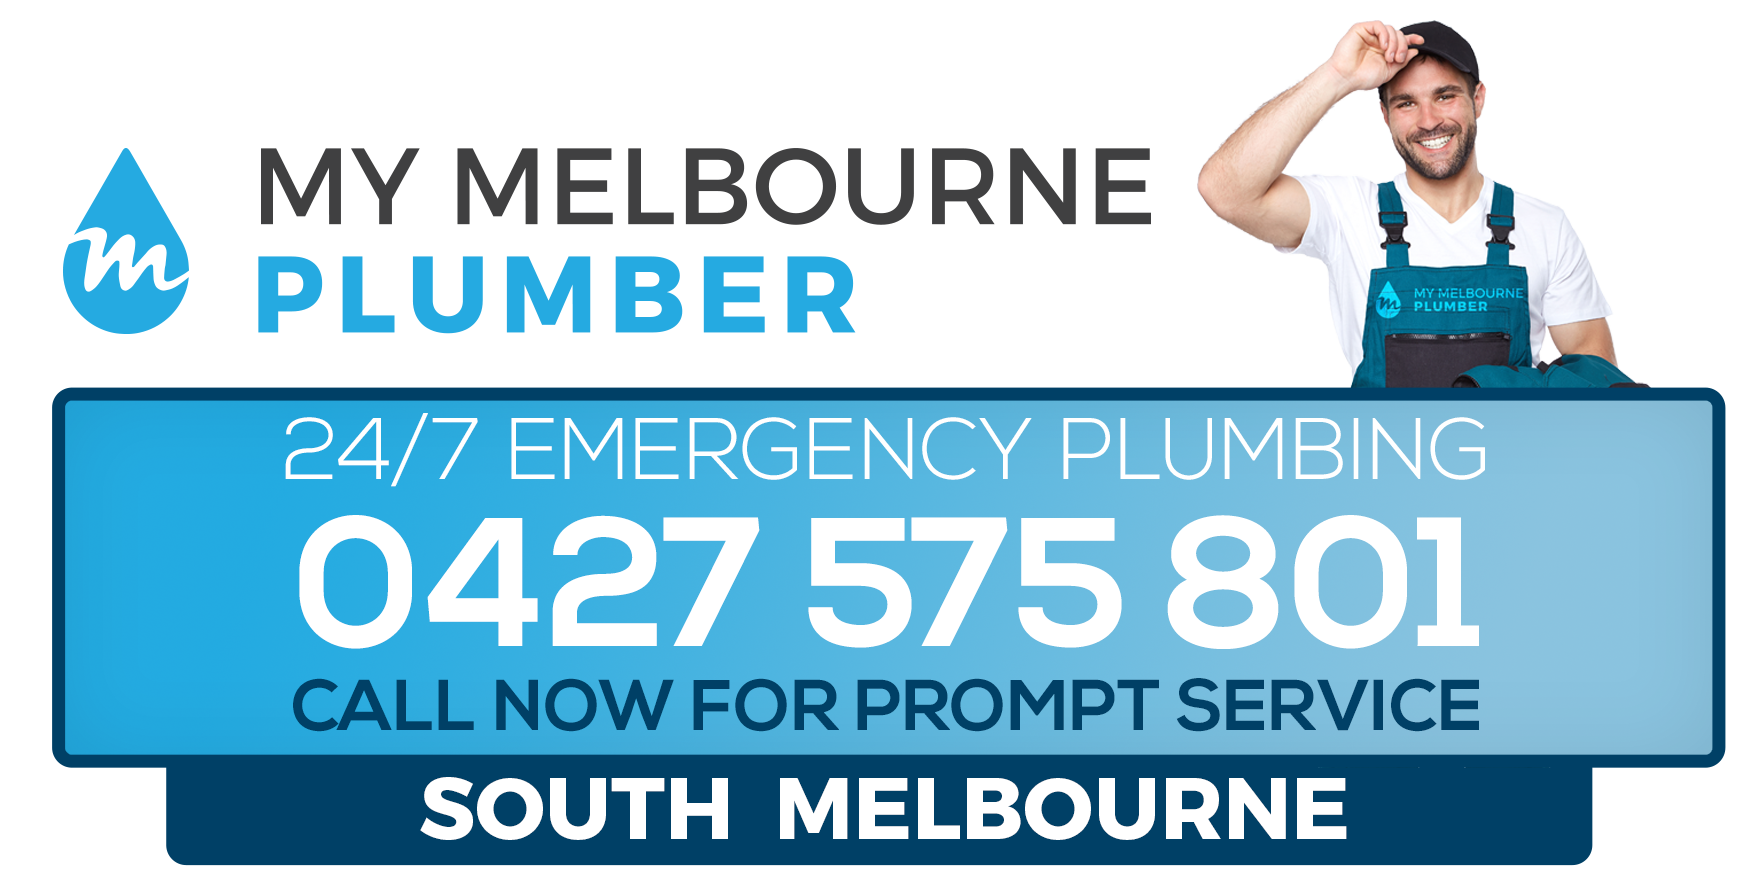 Plumbers South Melbourne